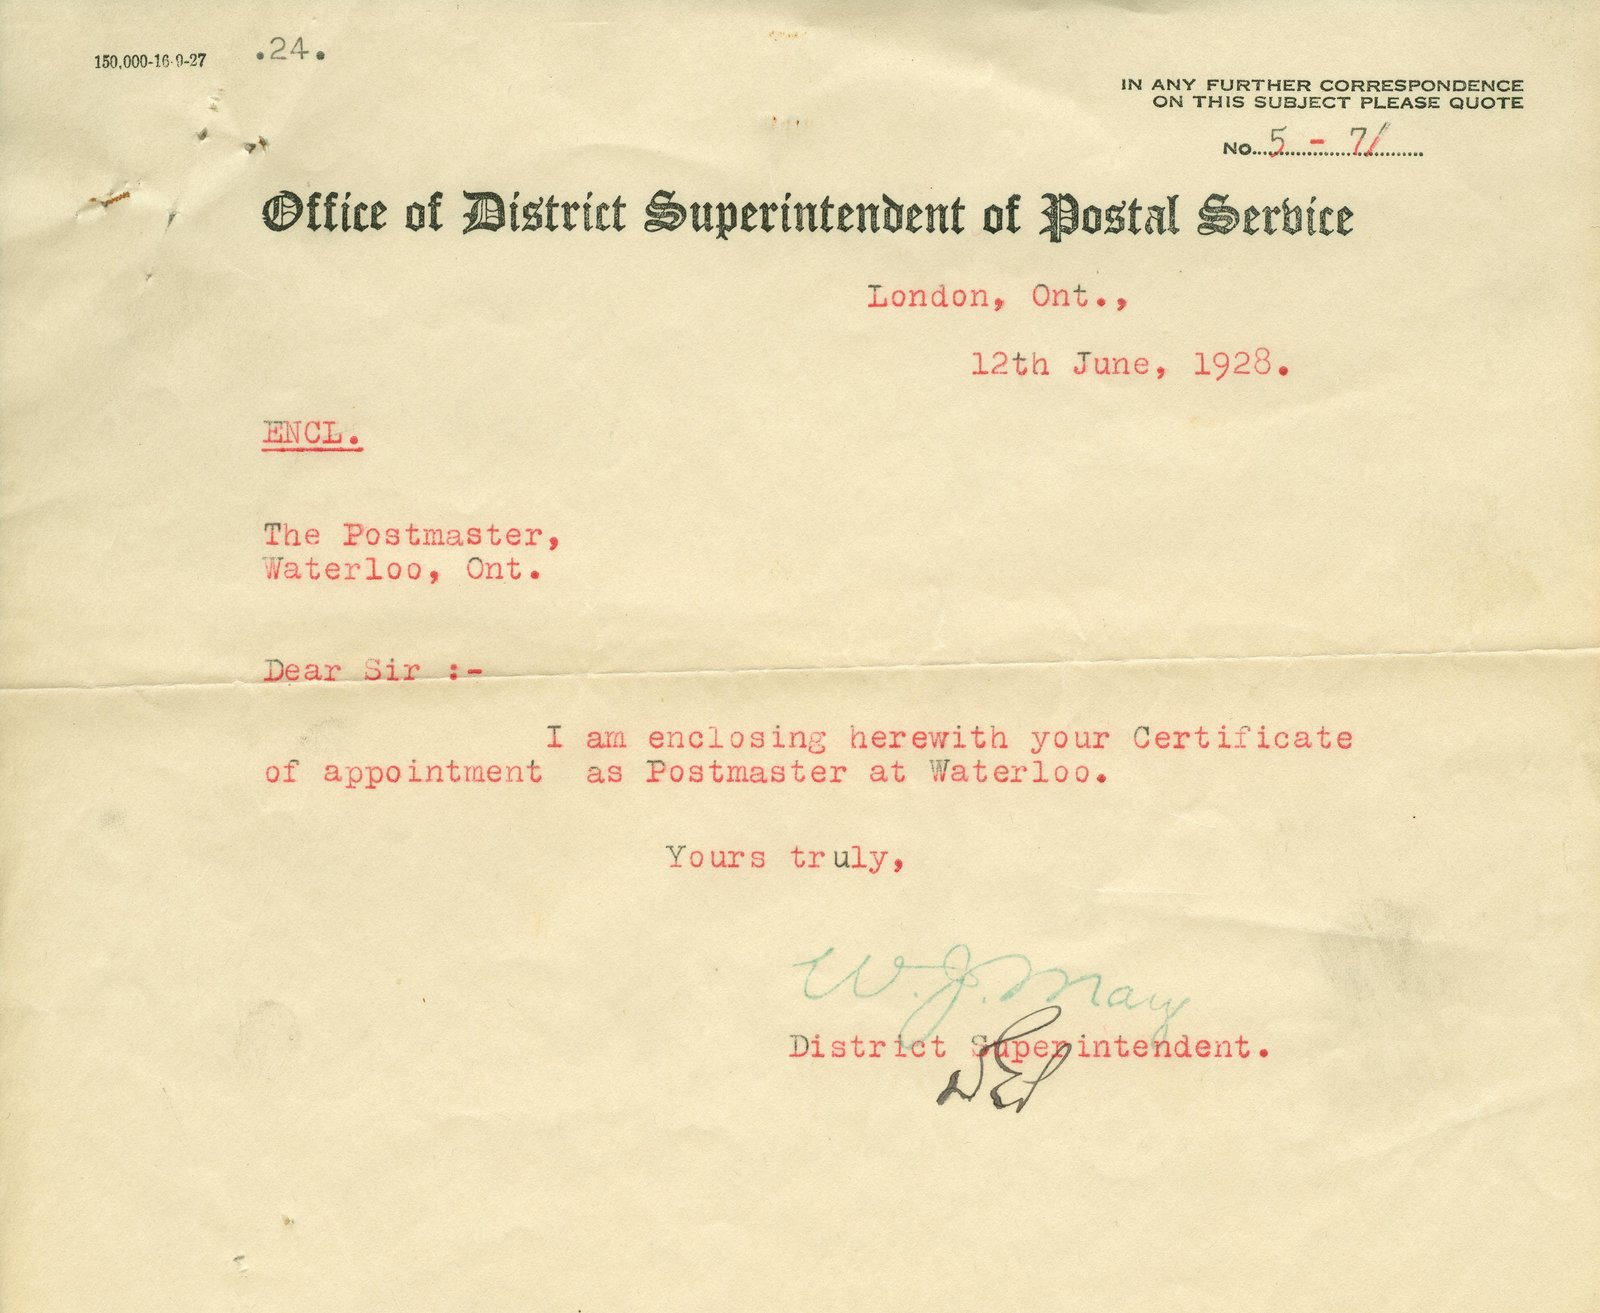 Waterloo Postmaster Certificate of Appointment Letter